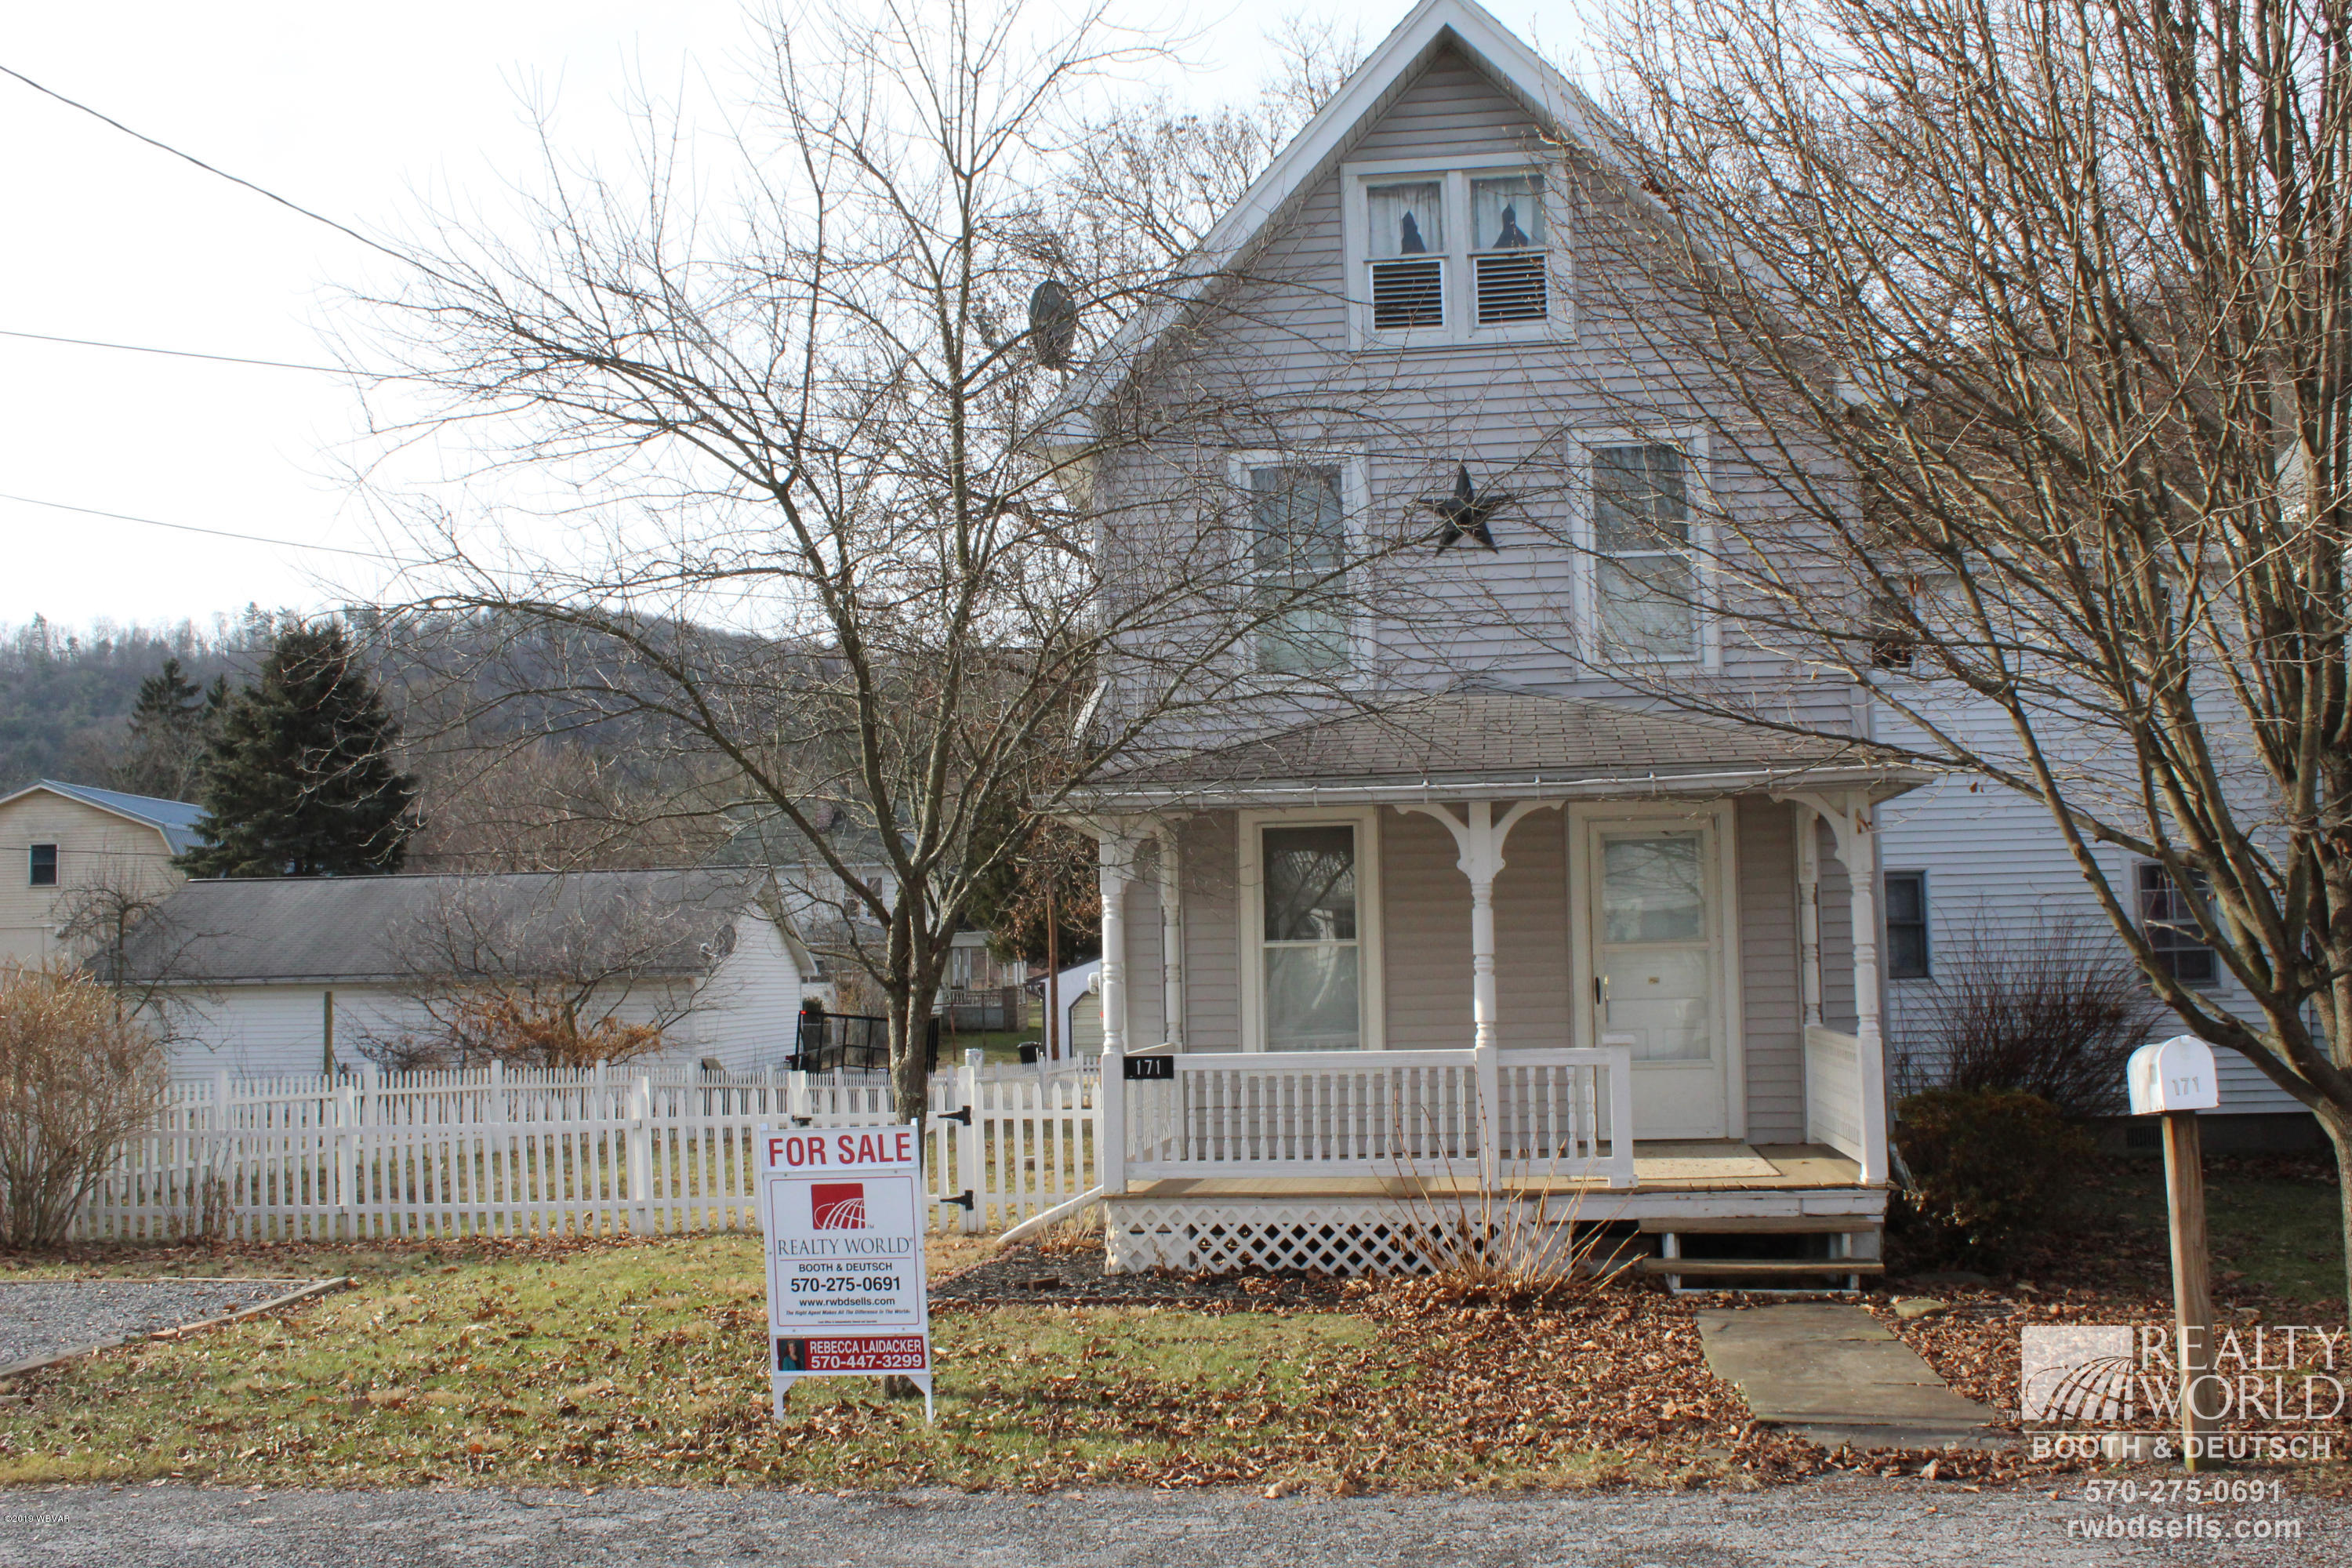 171 CHURCH STREET,Picture Rocks,PA 17762,3 Bedrooms Bedrooms,2 BathroomsBathrooms,Residential,CHURCH,WB-86256